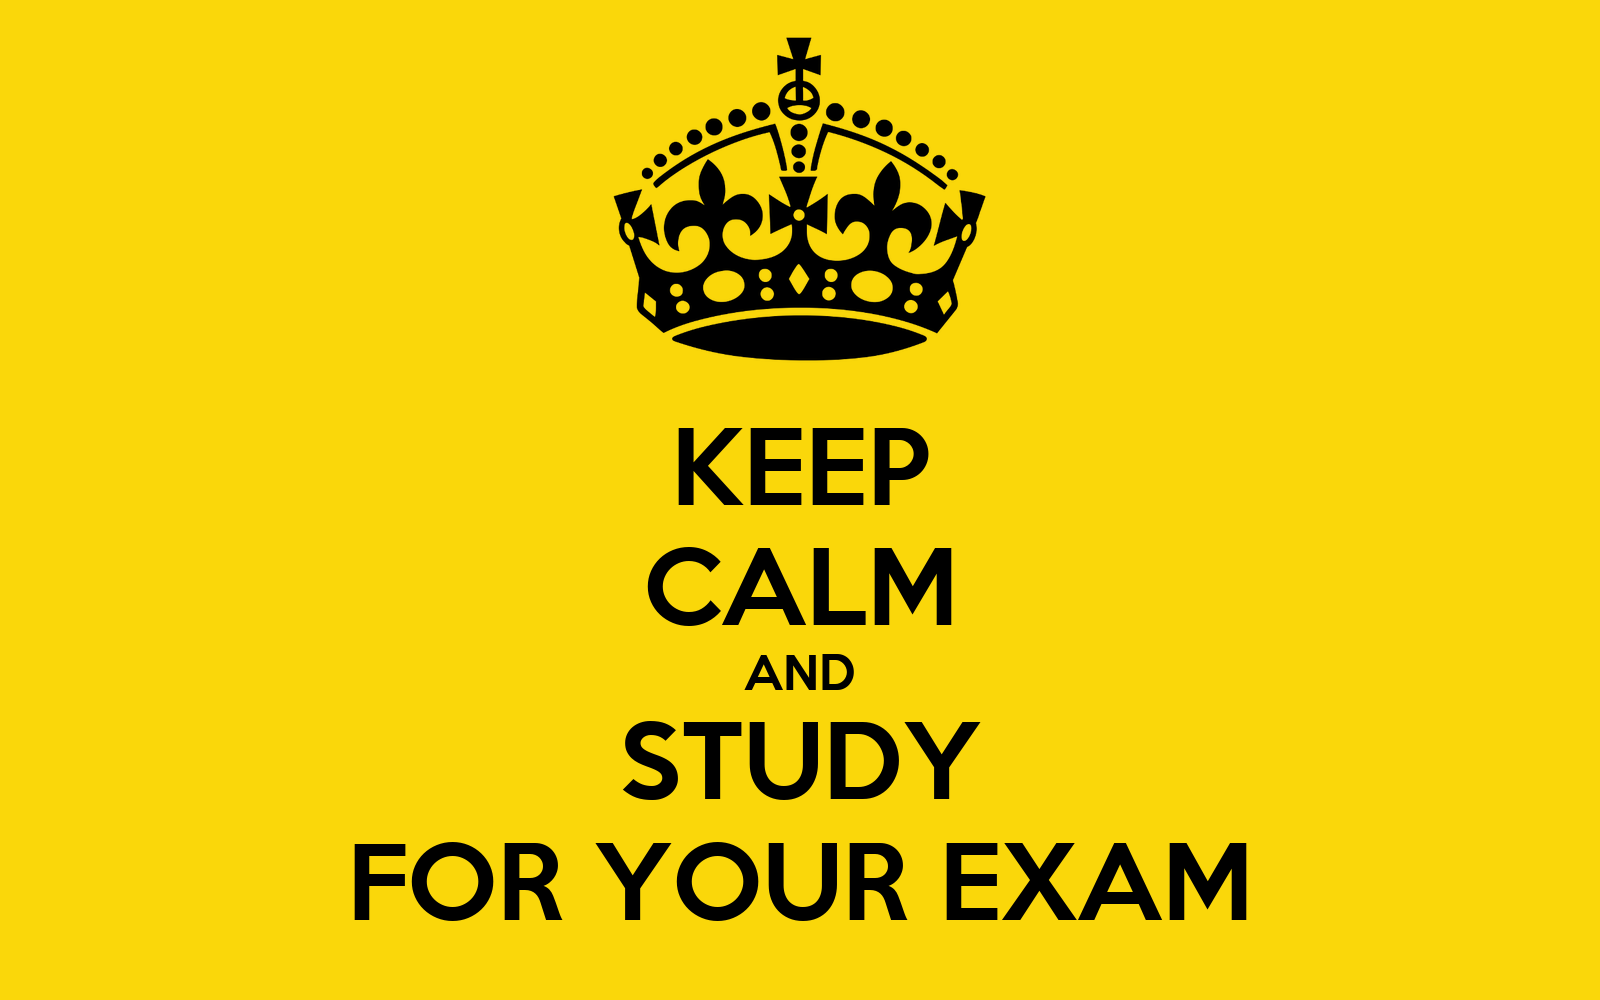 KEEP CALM AND STUDY FOR YOUR EXAM - KEEP CALM AND CARRY ON ...